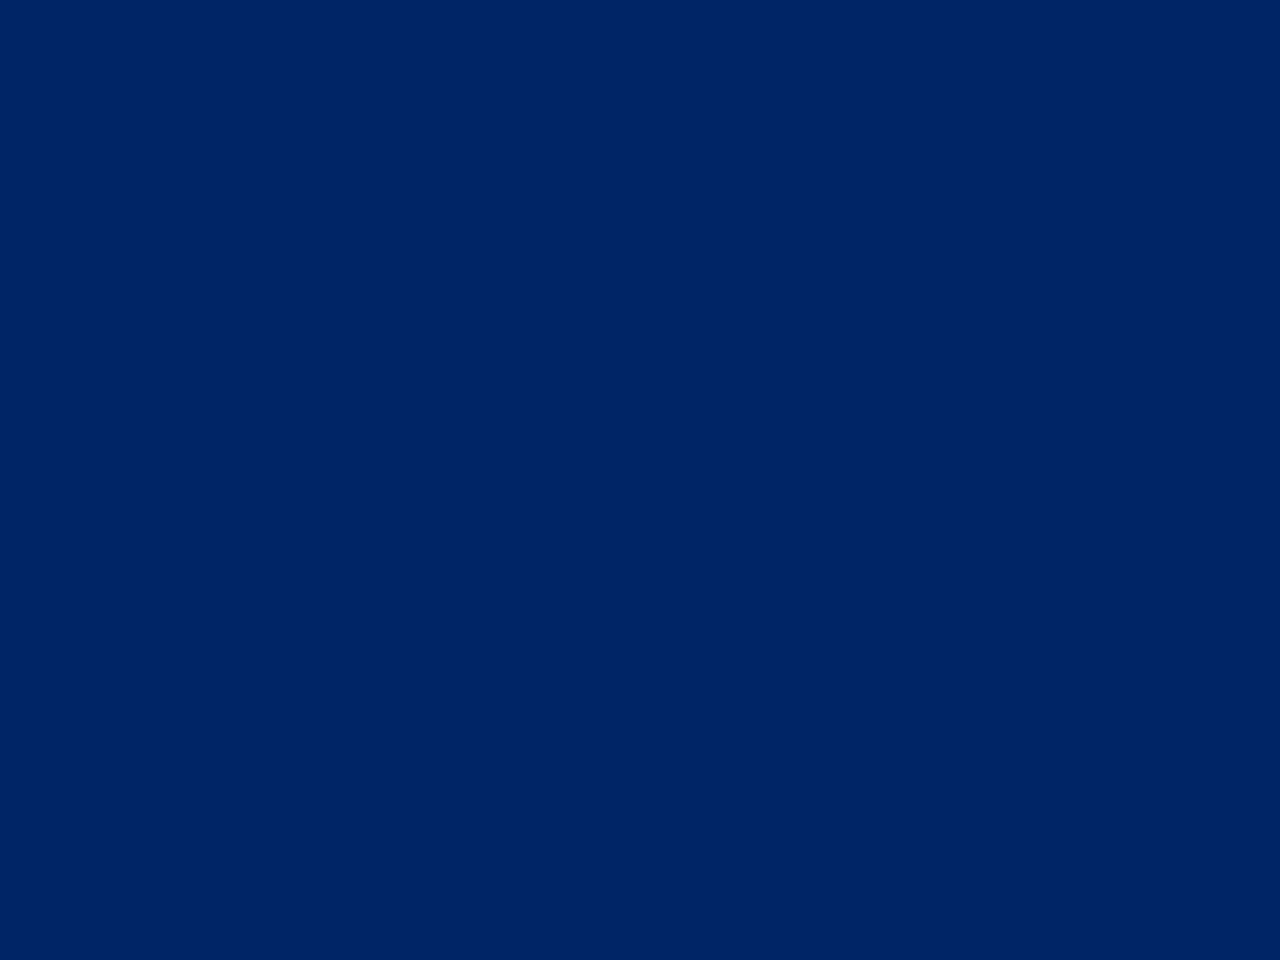 1280x960 Royal Blue Traditional Solid Color Background